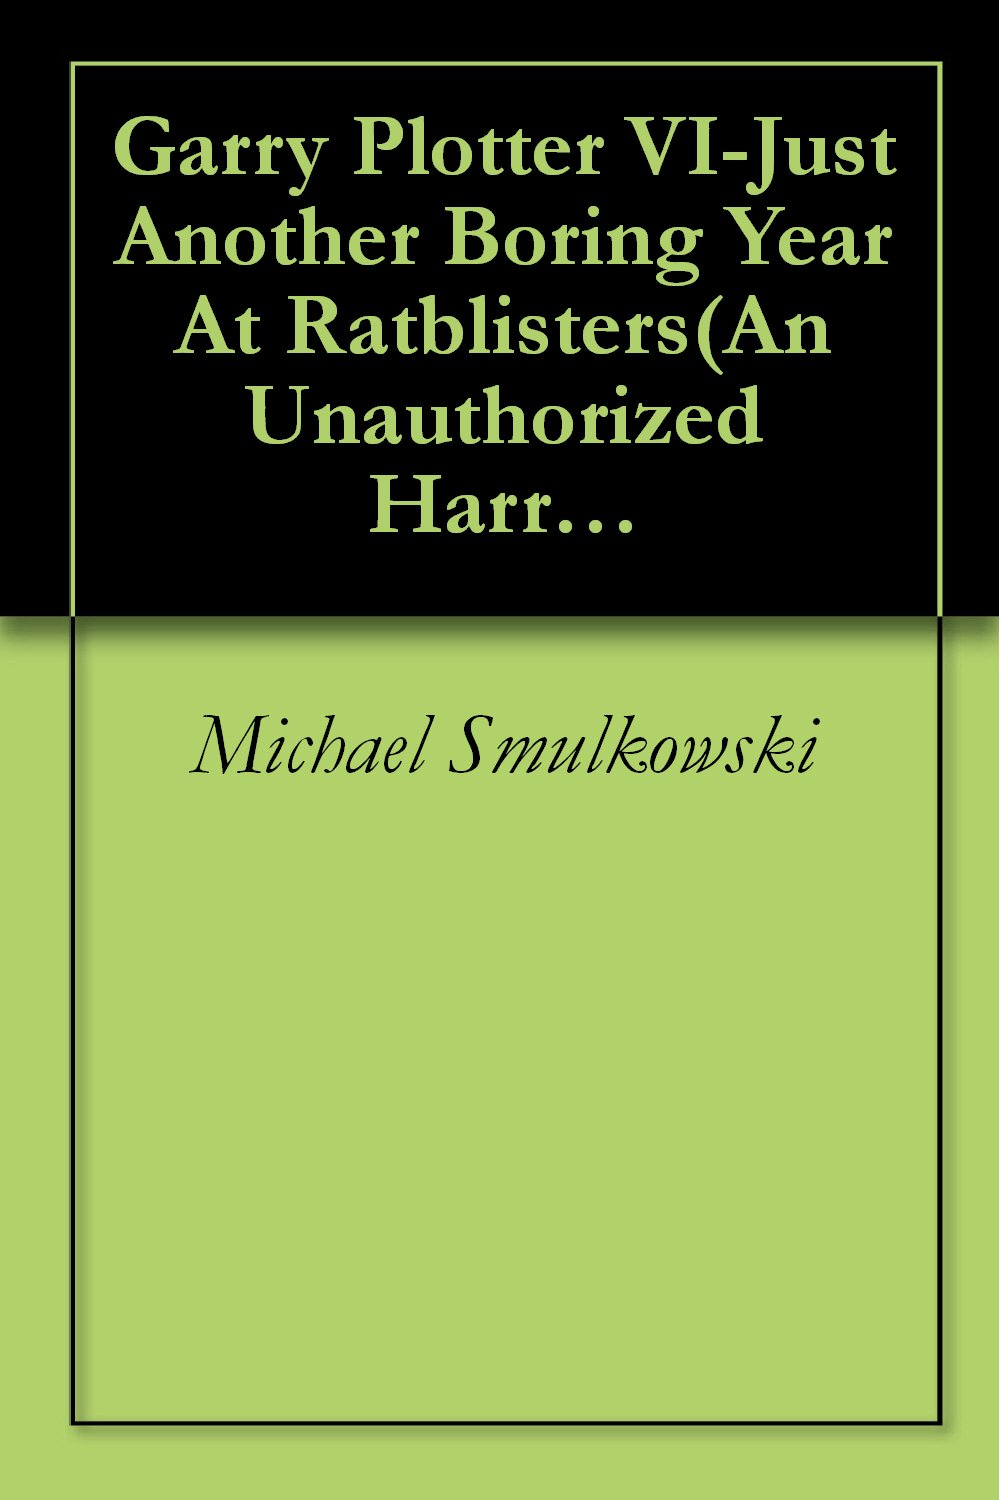 Garry Plotter VI-Just Another Boring Year At Ratblisters(An Unauthorized Harry Potter Parody) (English Edition) eBook: Smulkowski, Michael: Amazon.es: Tienda Kindle